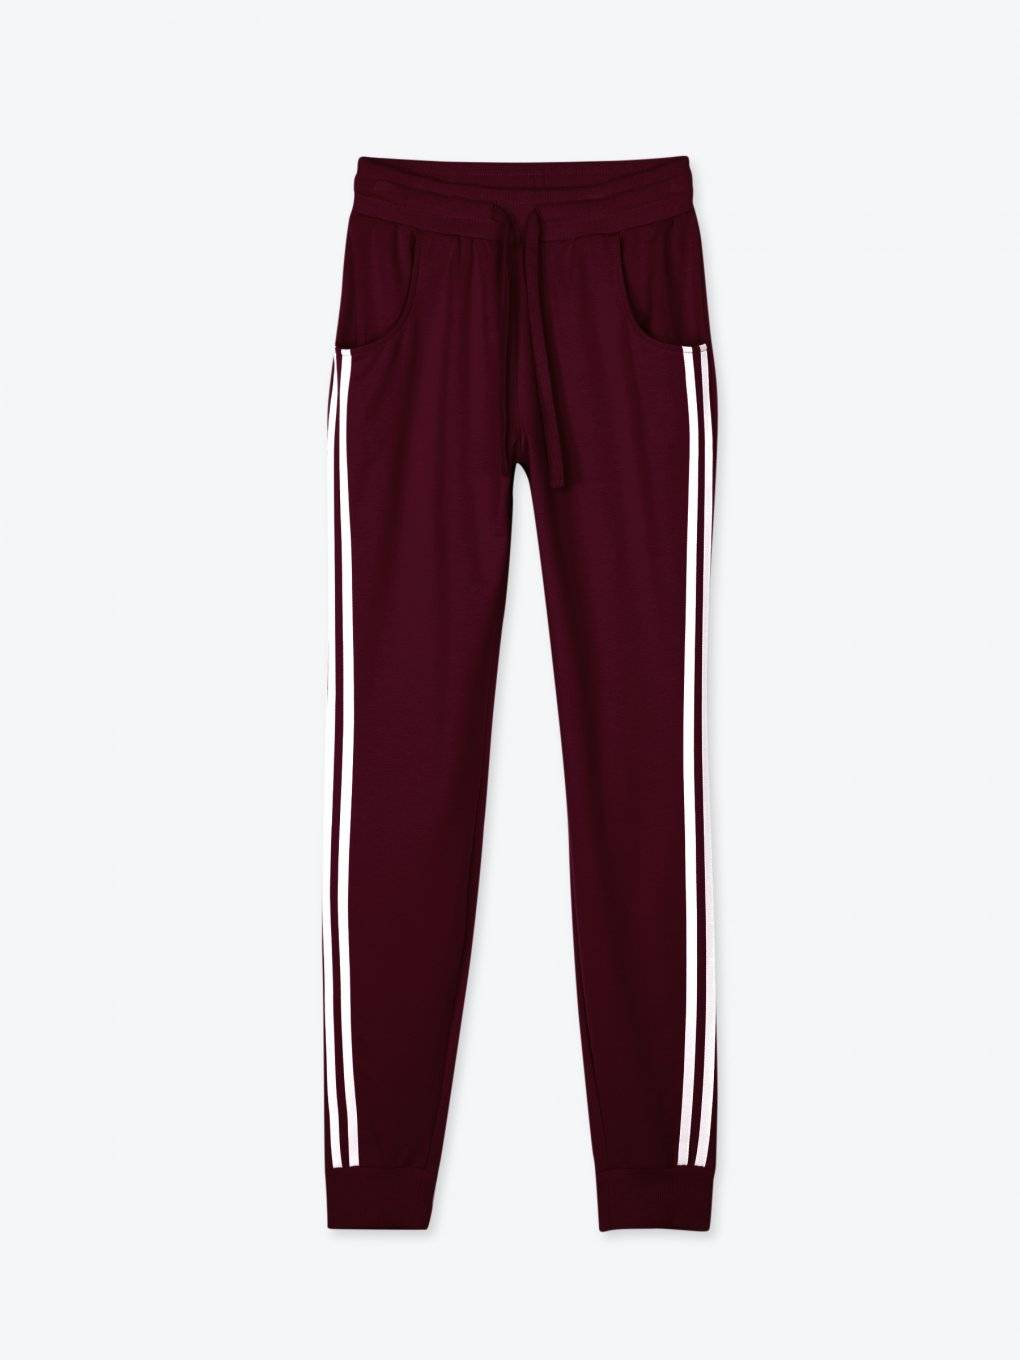 Sweatpants with side stripes